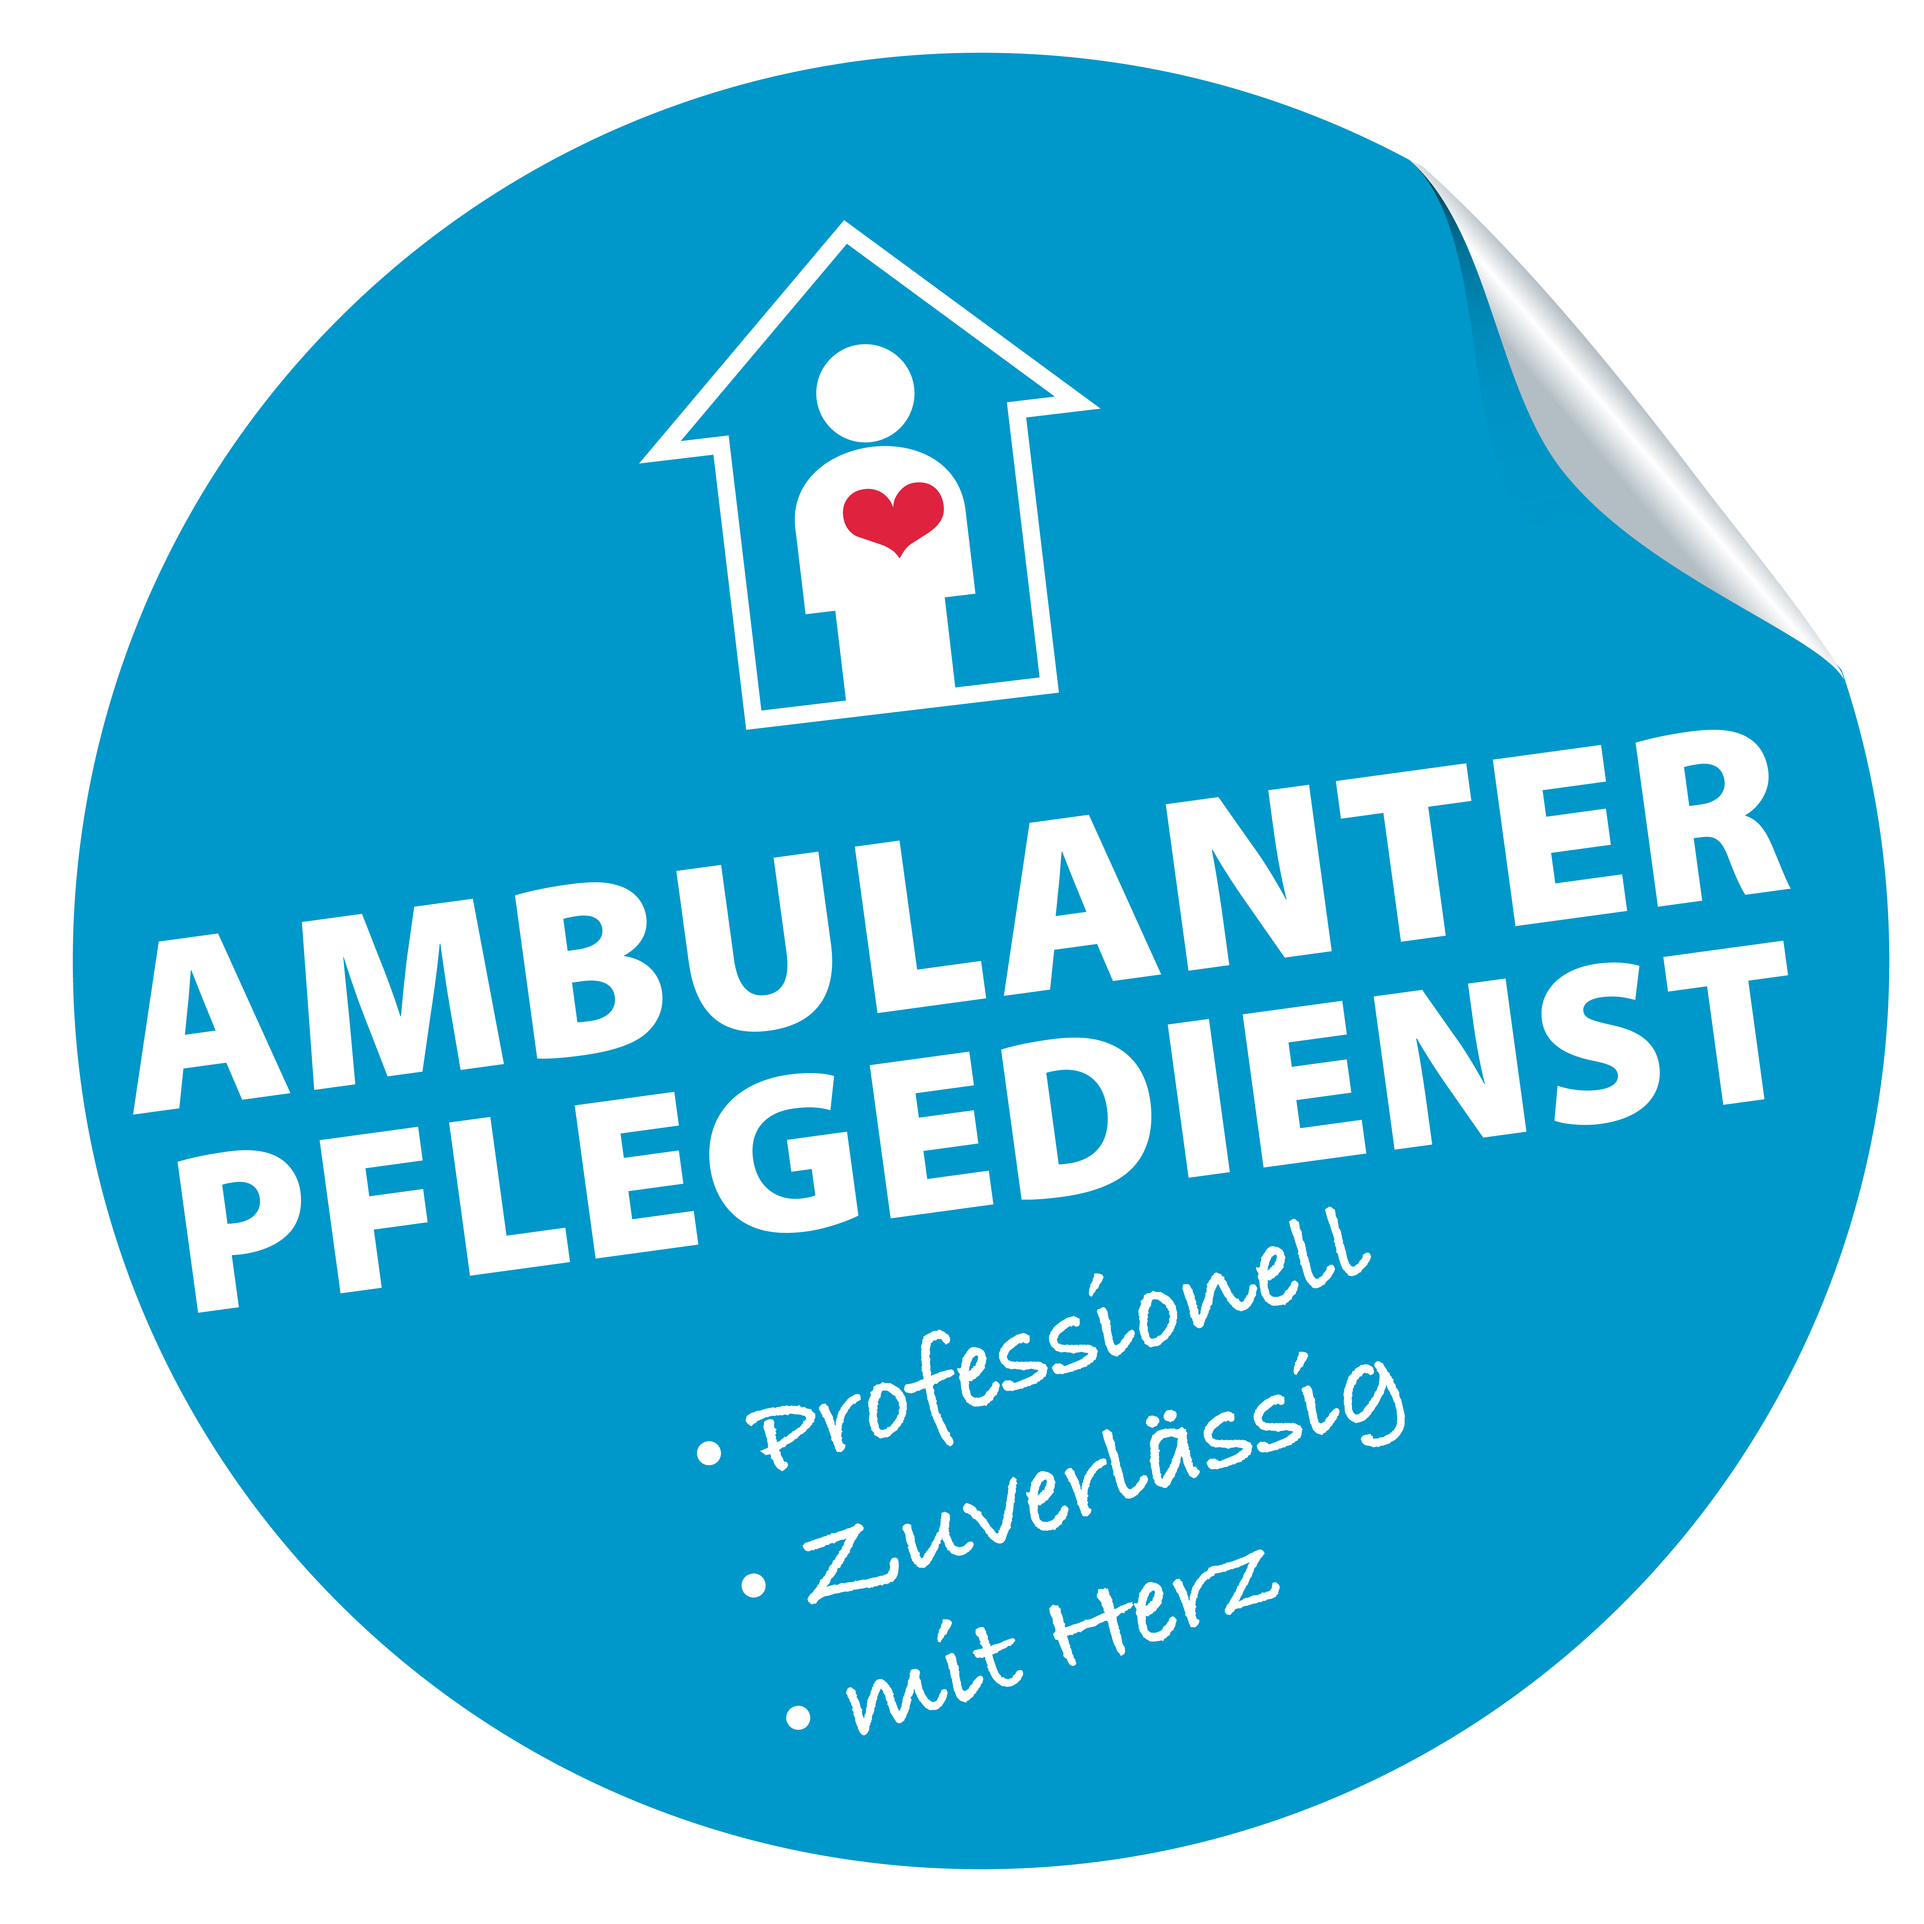 Ambulanter Pfegedienst